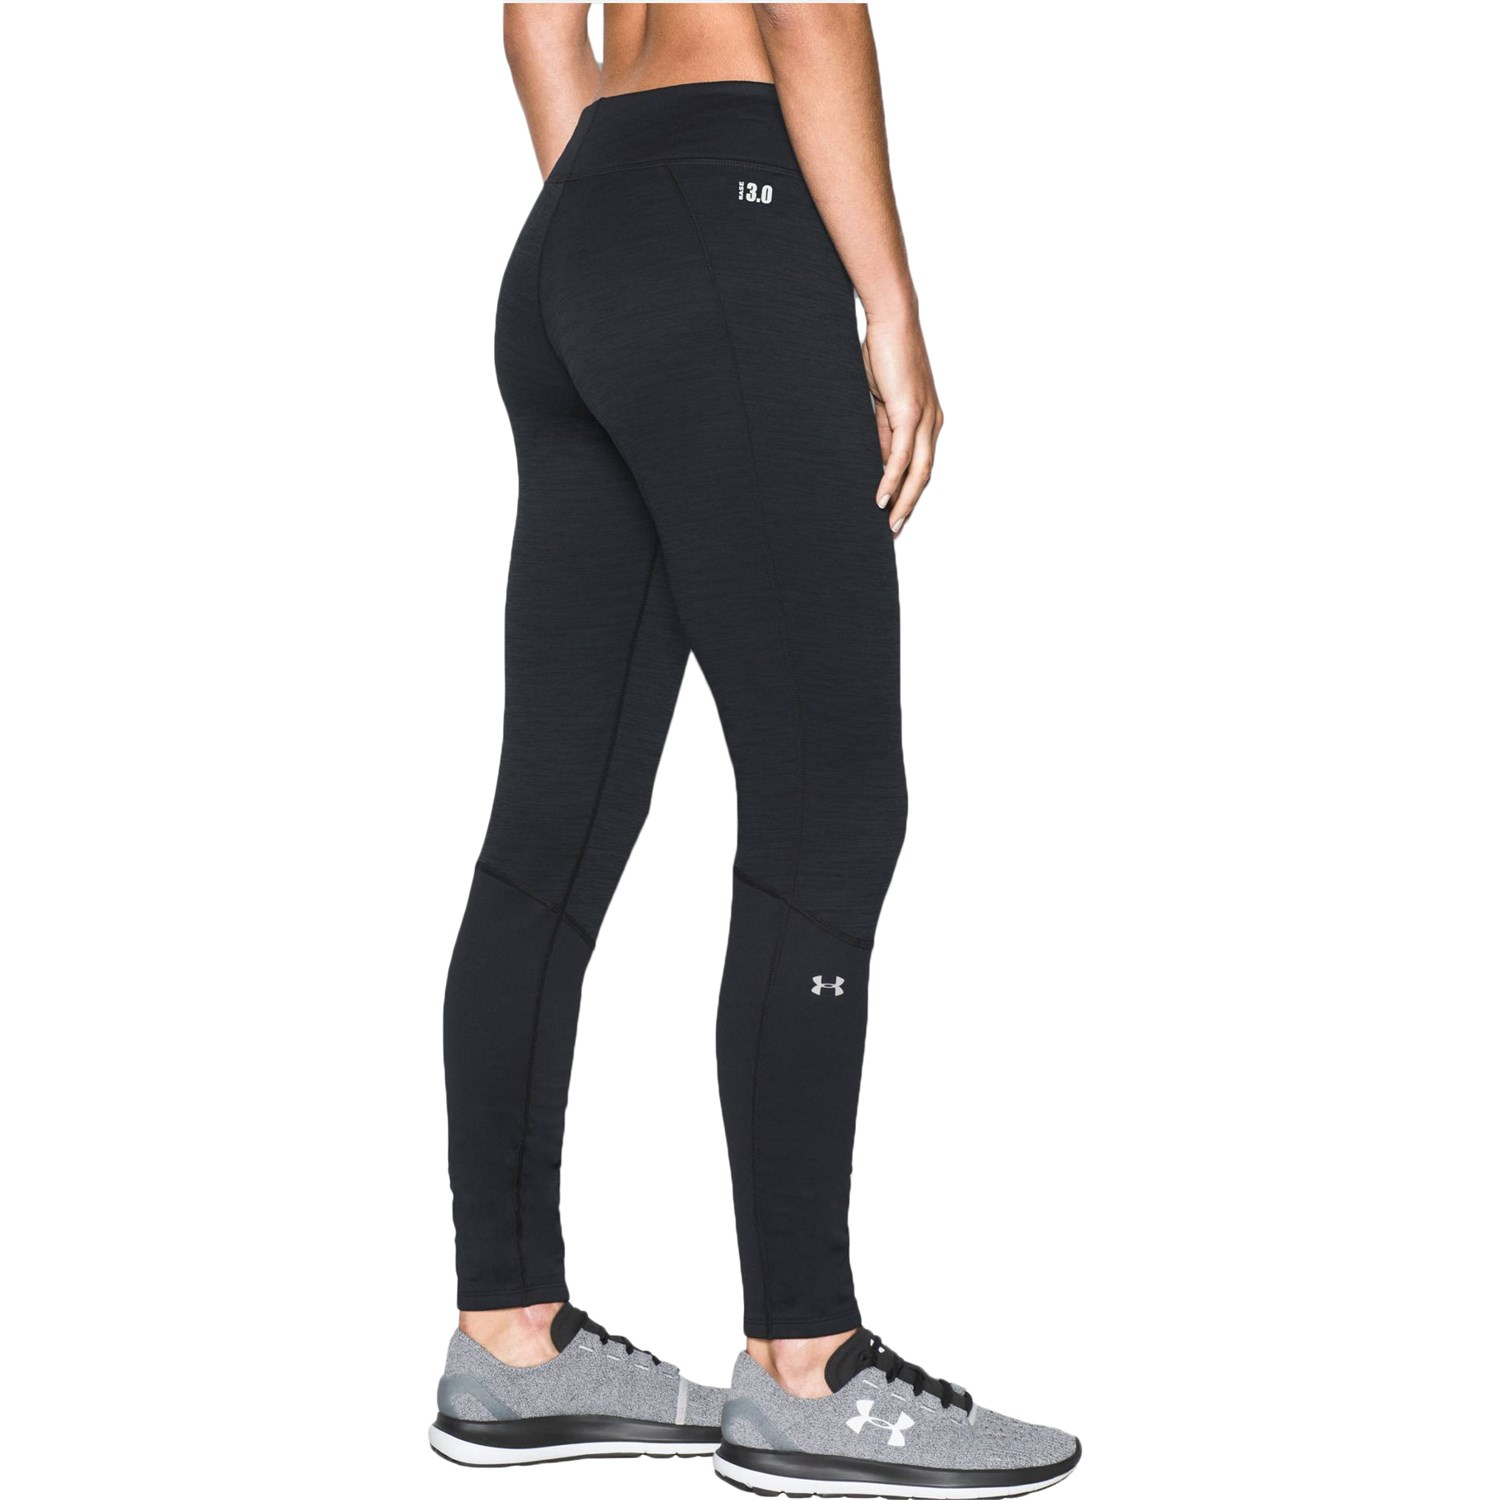 f66f548270c3a9 Under Armour Base™ 3.0 Legging Pants - Women's | evo